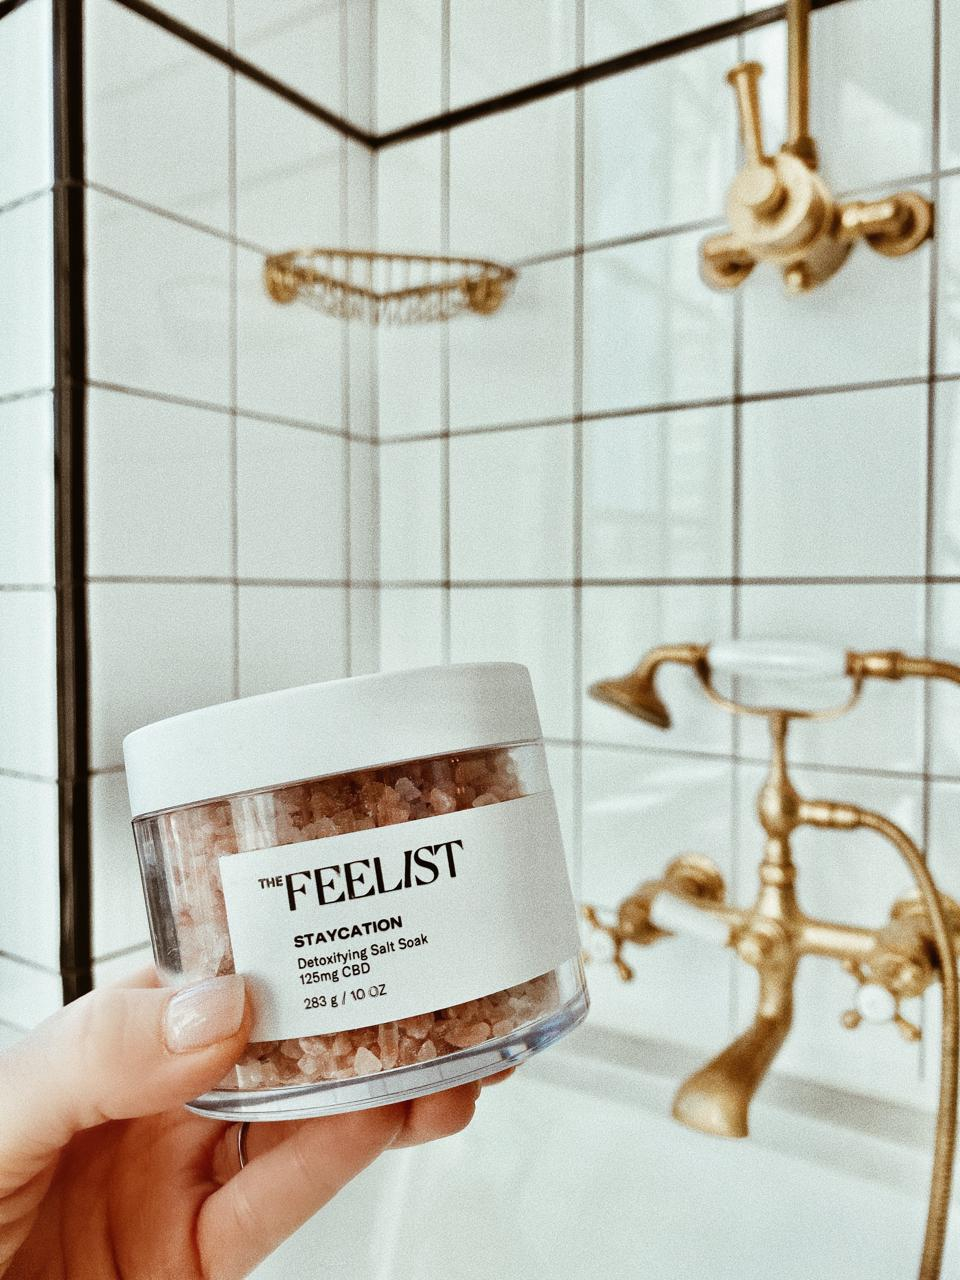 The Feelist Staycation Detoxifying Salt Soak